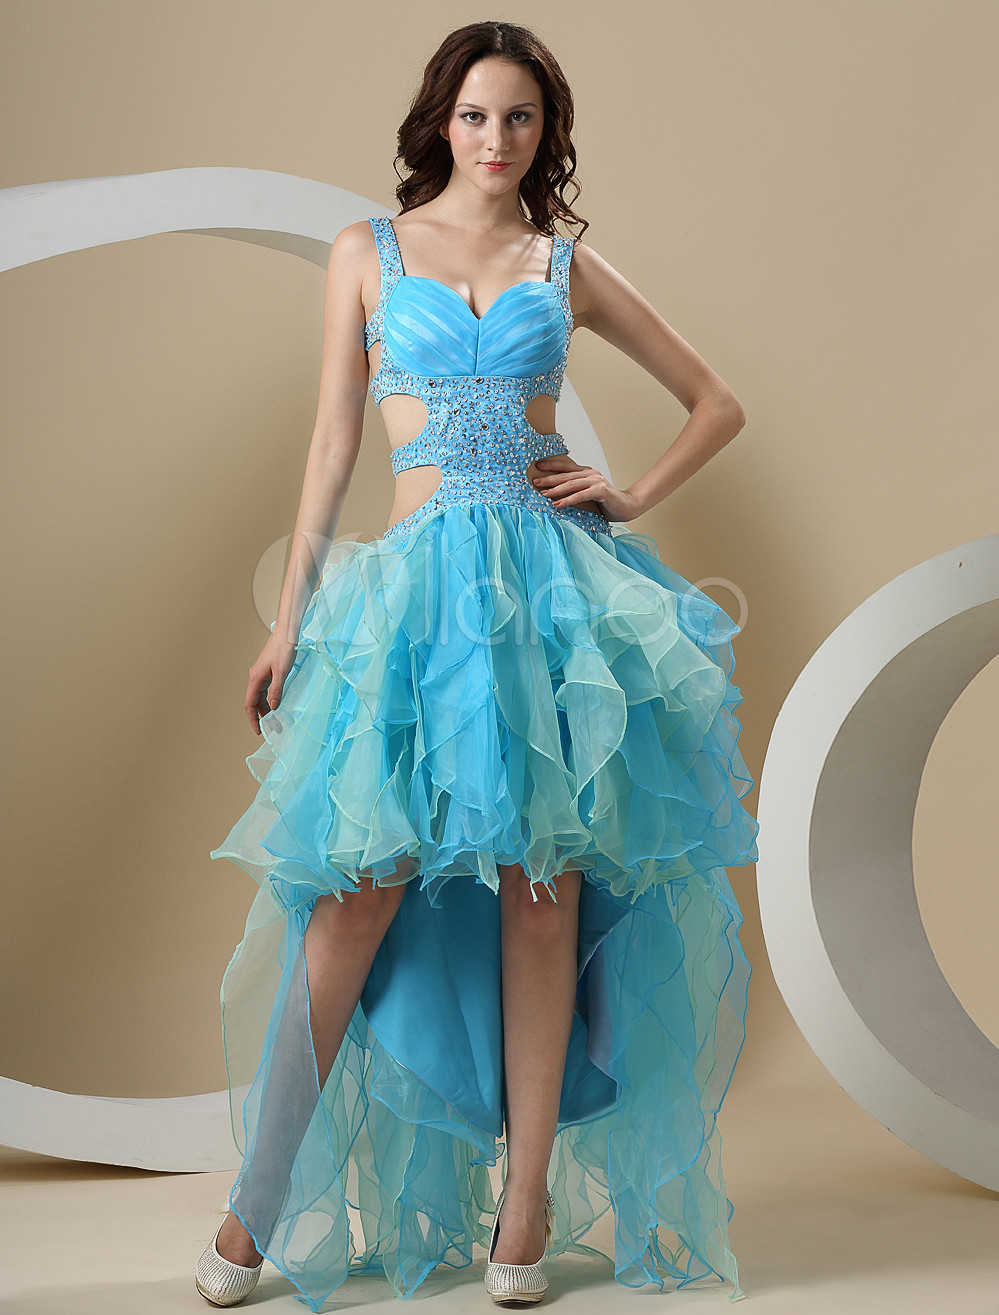 Milanoo.com Ltd #Prom Dresses #Blue #Long #Back #Short #Front #A ...